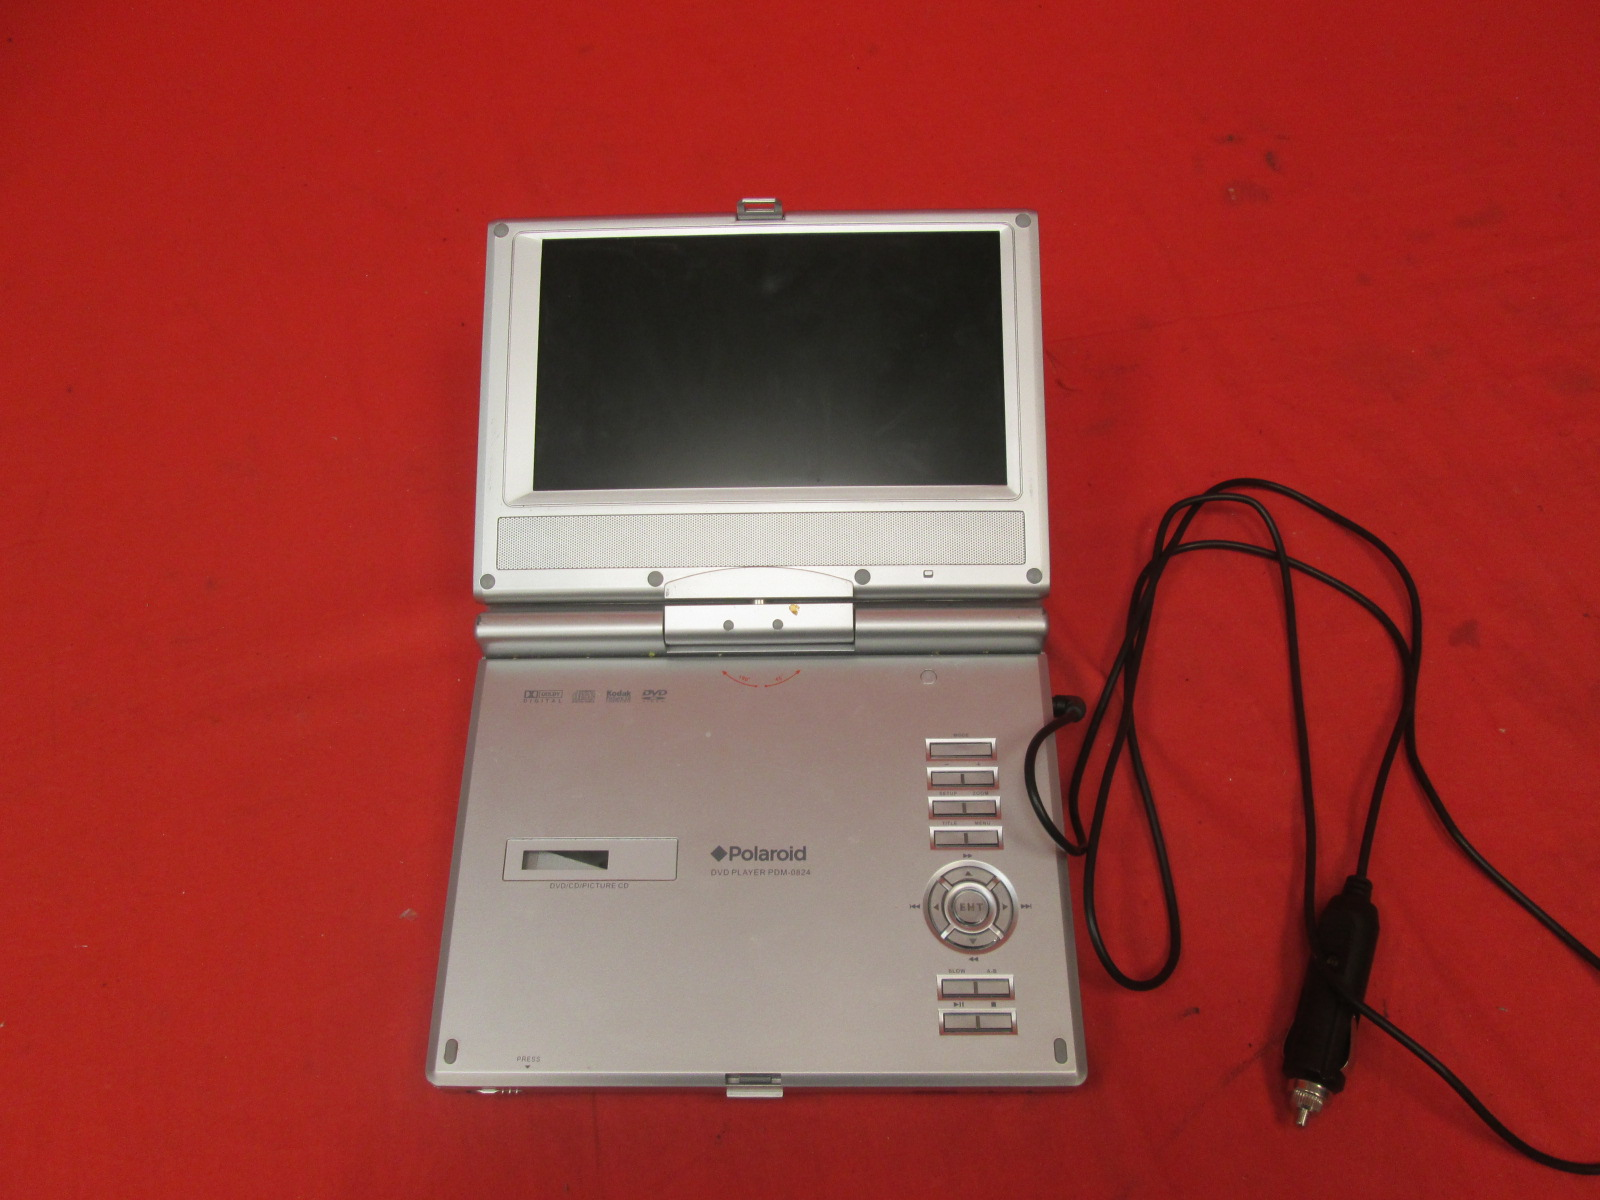 Polaroid PDM-0824 8-inch Swivel Screen Portable DVD For PlayStation 2